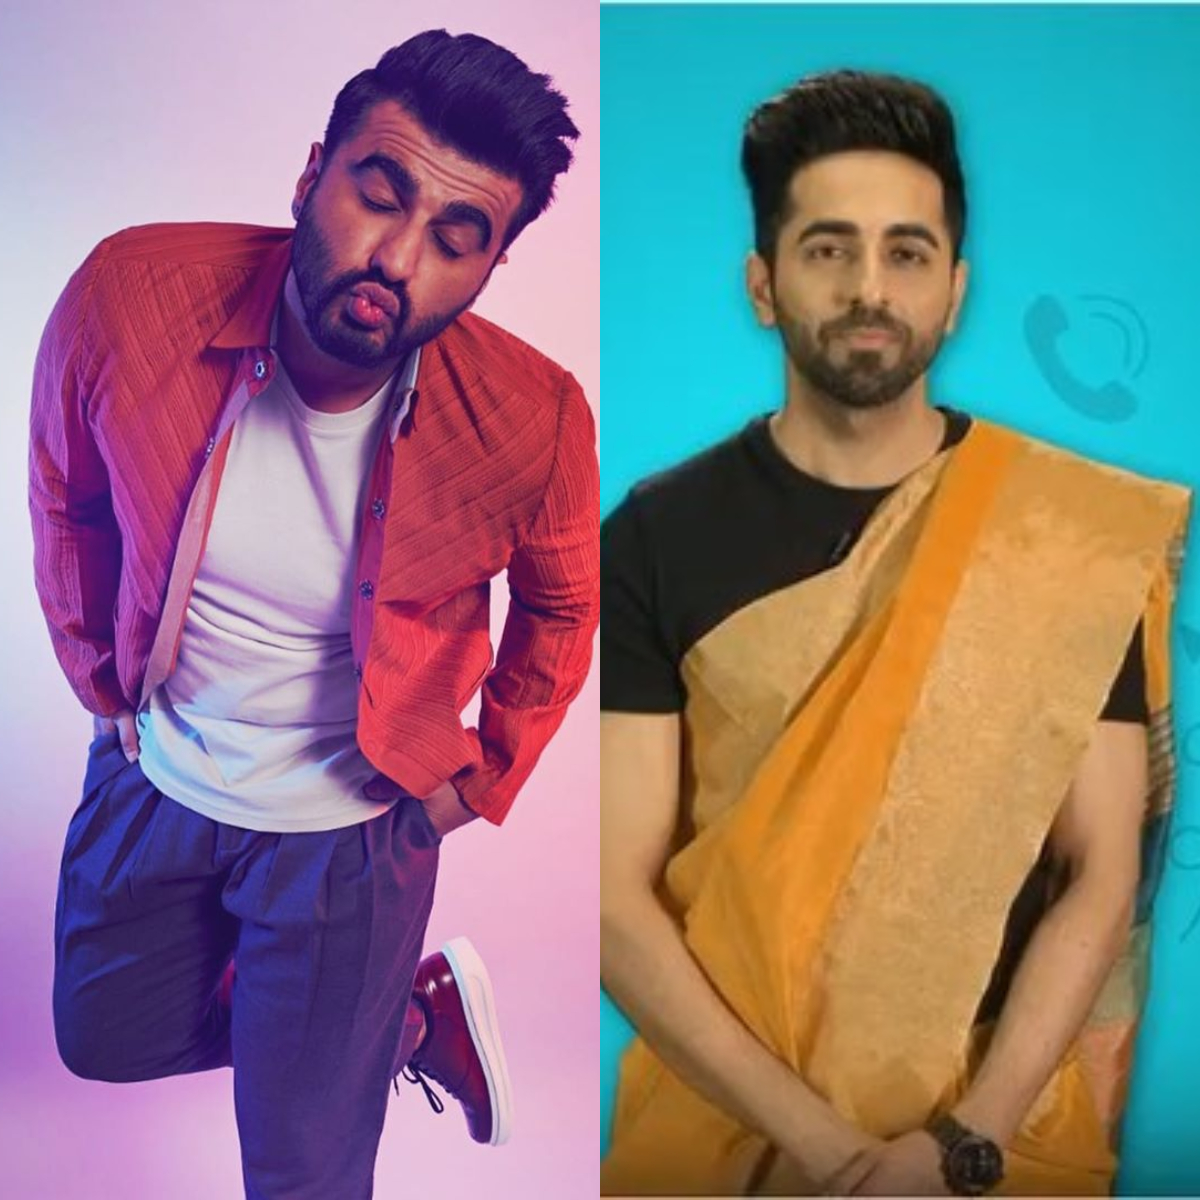 Arjun Kapoor & Ayushmann Khurrana take up photo challenge & share EPIC profile pics for social media platforms